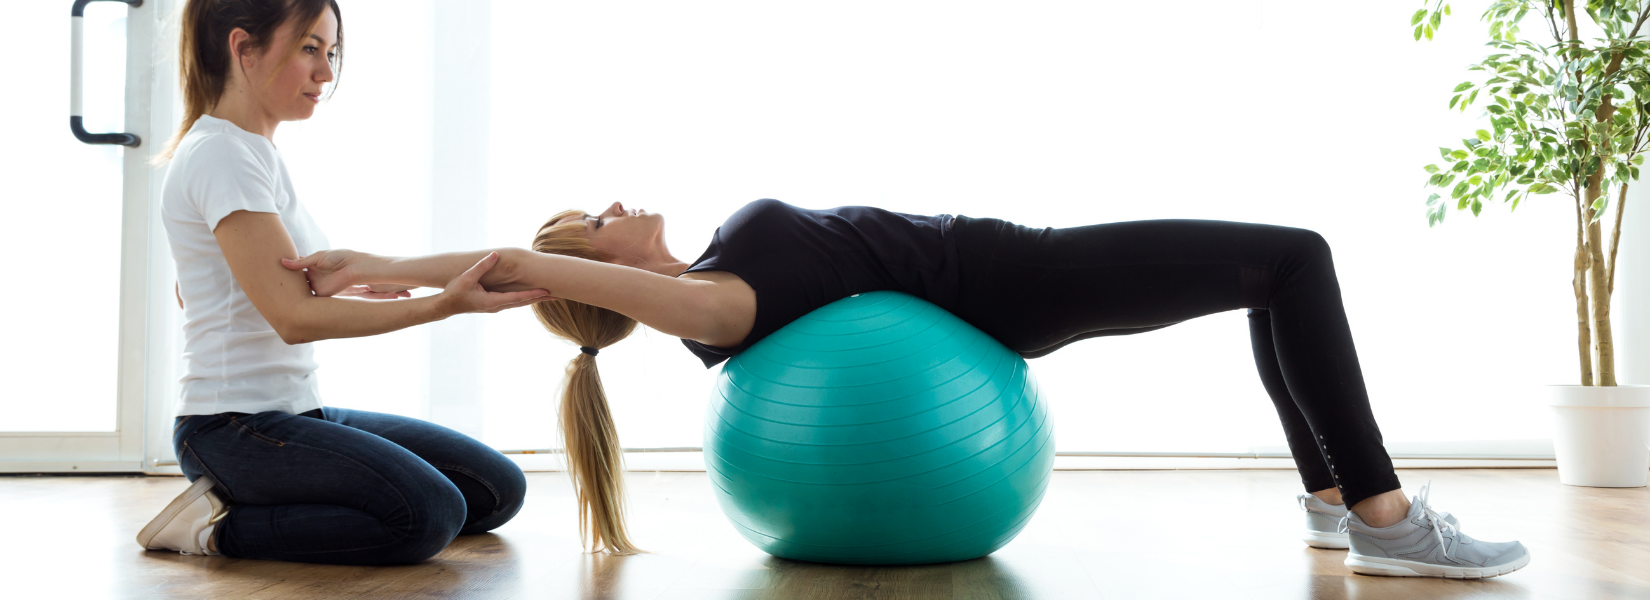 What Makes a Top Physiotherapist?